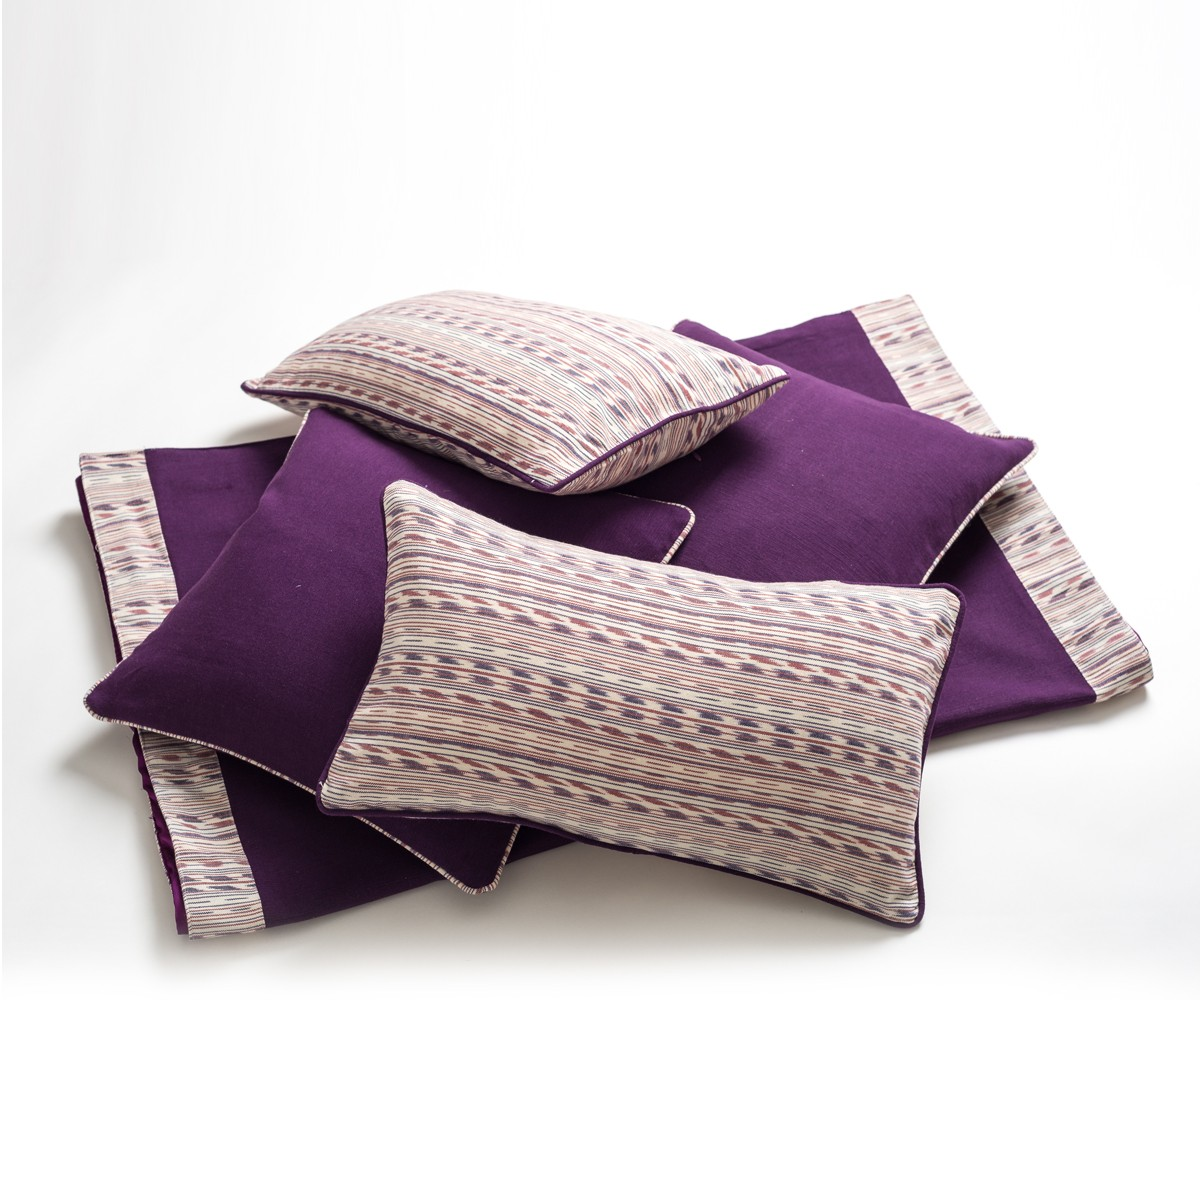 Chateau Bedroom Cushion Cover  Set - Purple